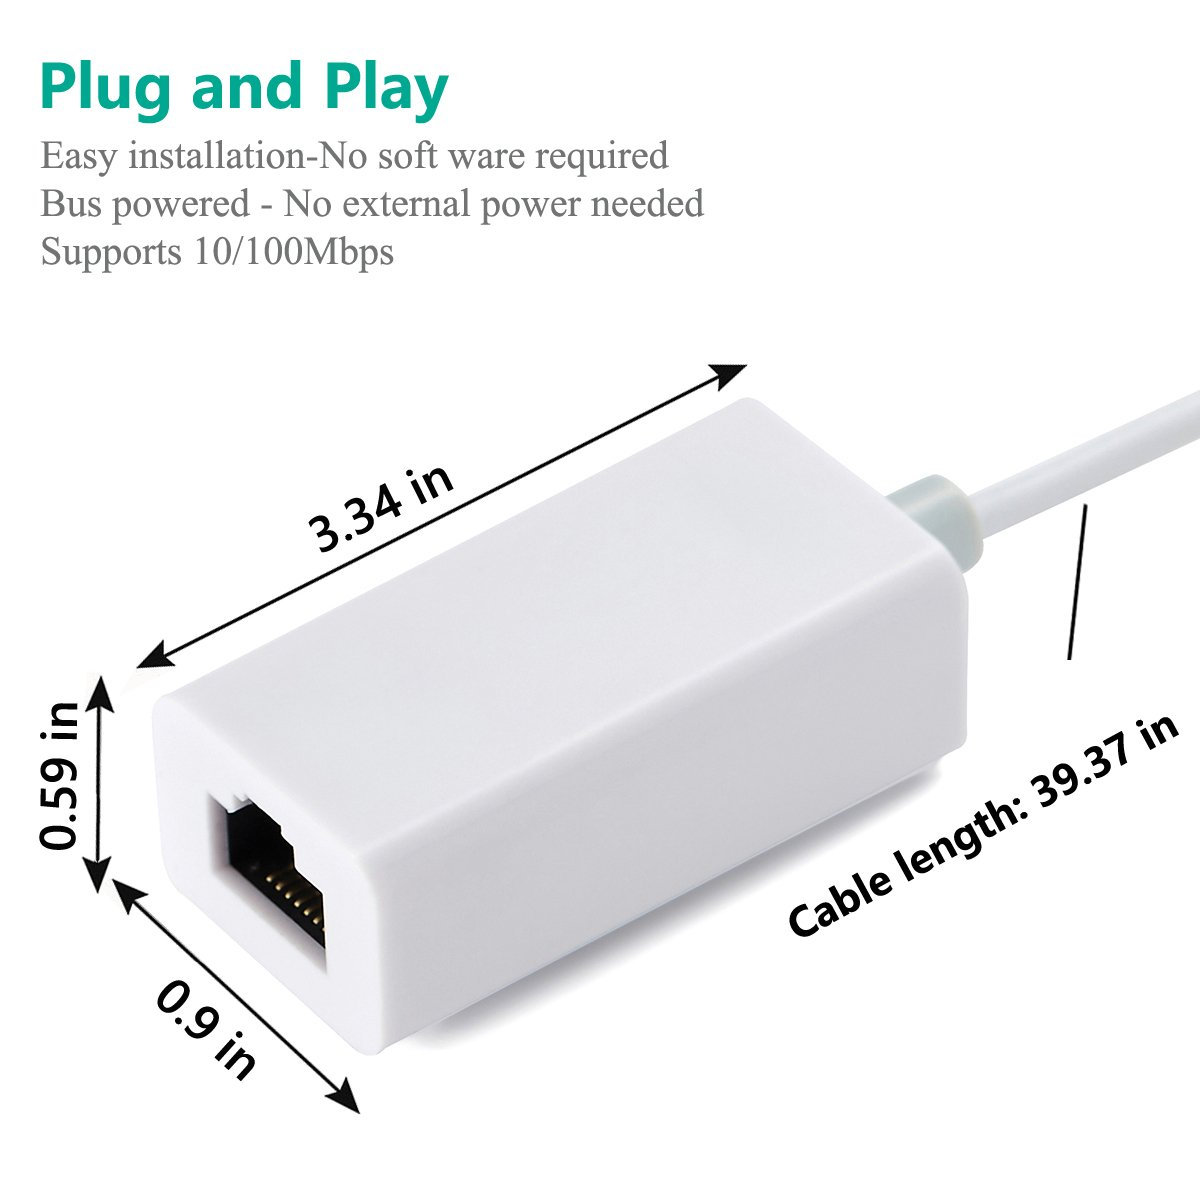 Lightning To Rj45 Ethernet Lan Wired Network Adapter For 100 Mbps Wiring Diagram Iphone And Ipad Plug Play No App Required Computers Accessories